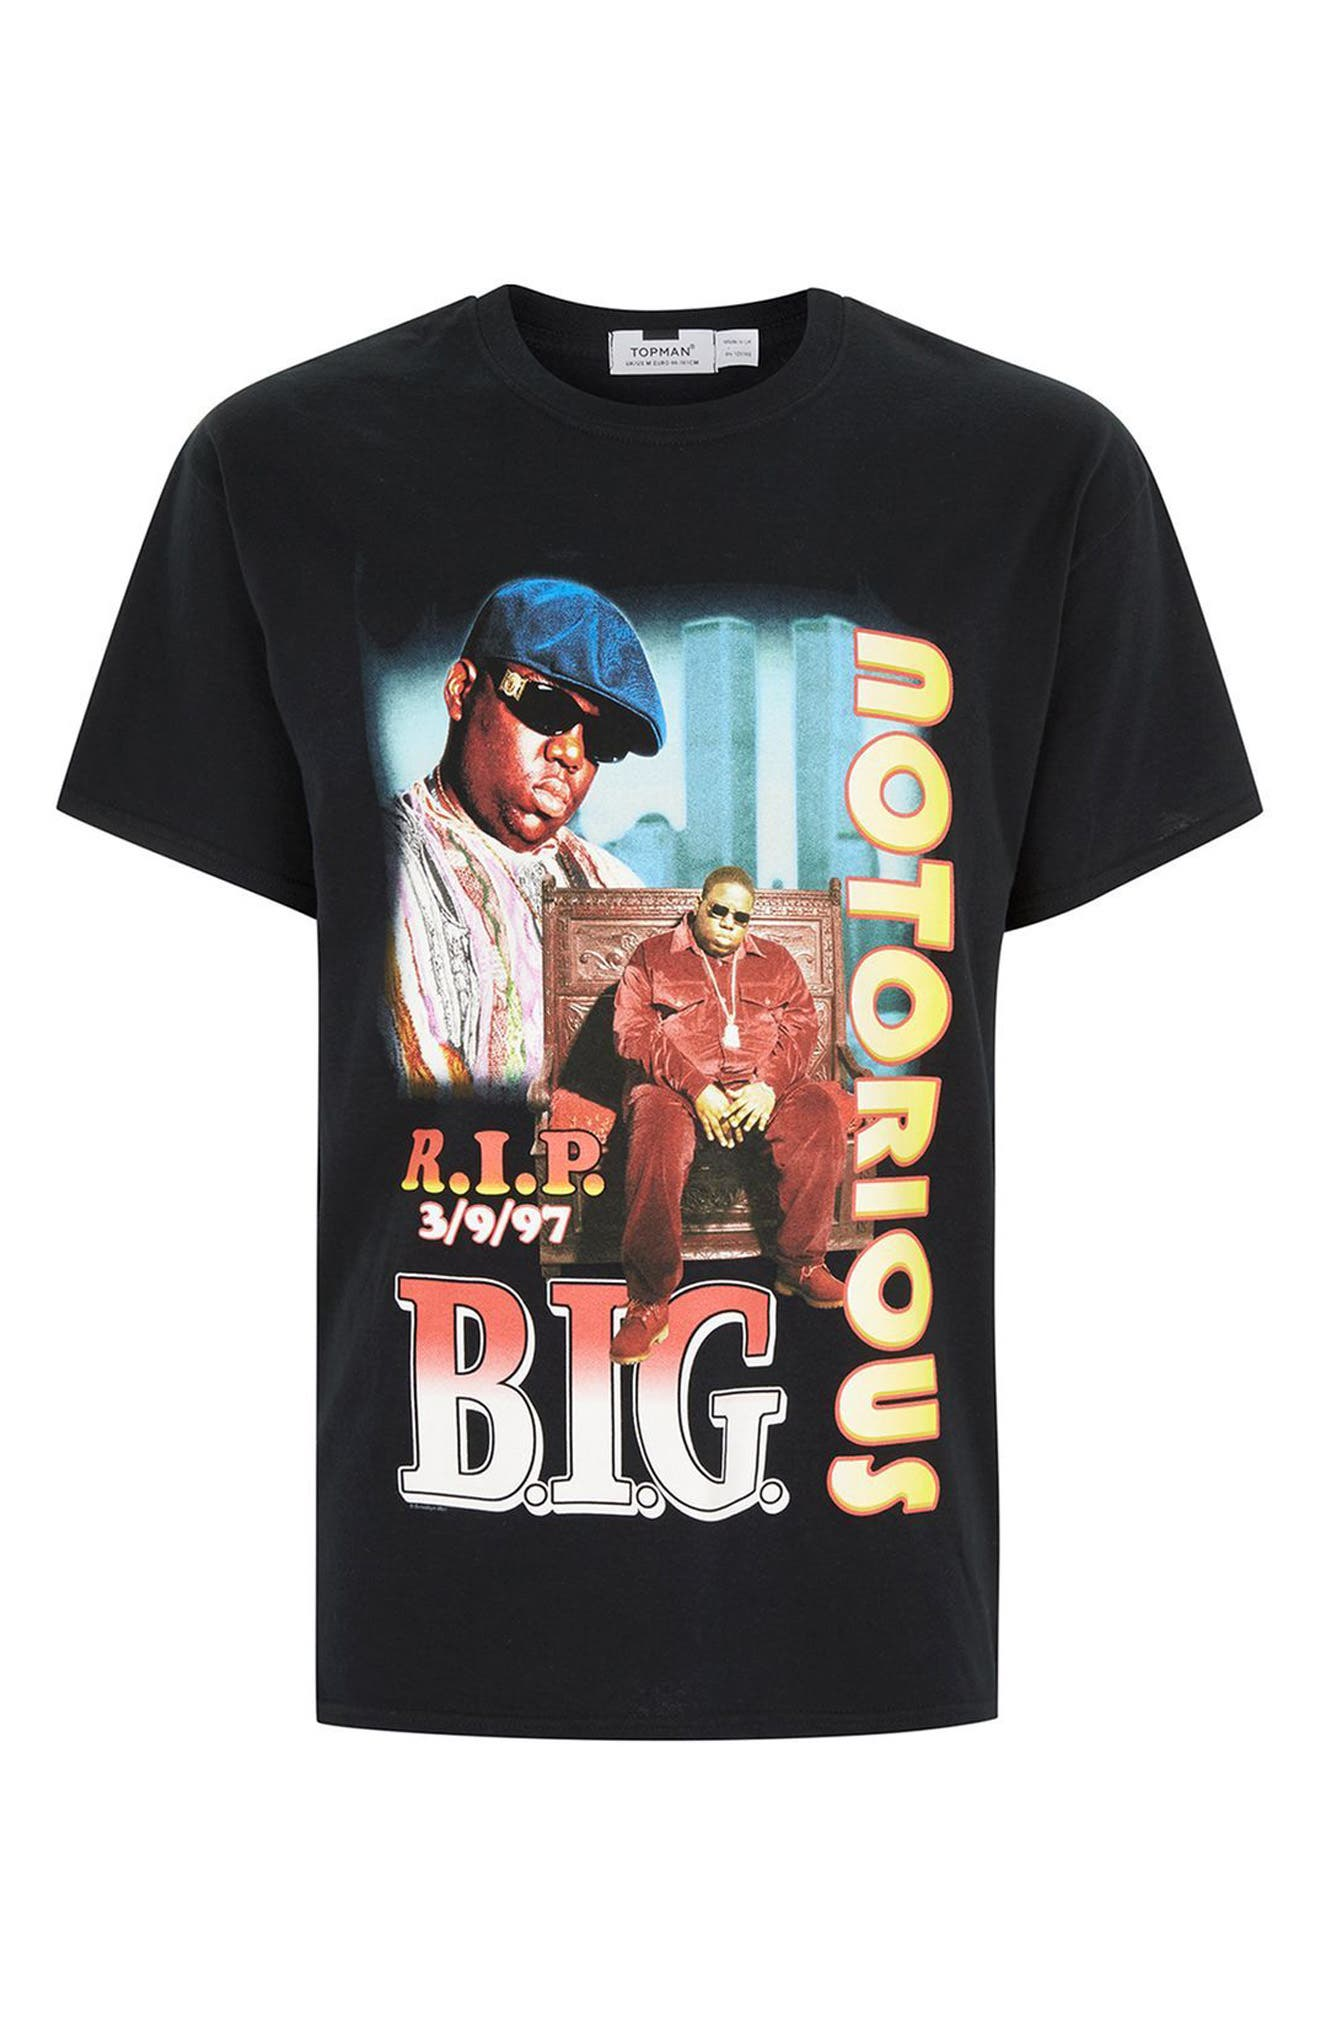 Biggie RIP T-Shirt,                             Alternate thumbnail 4, color,                             020